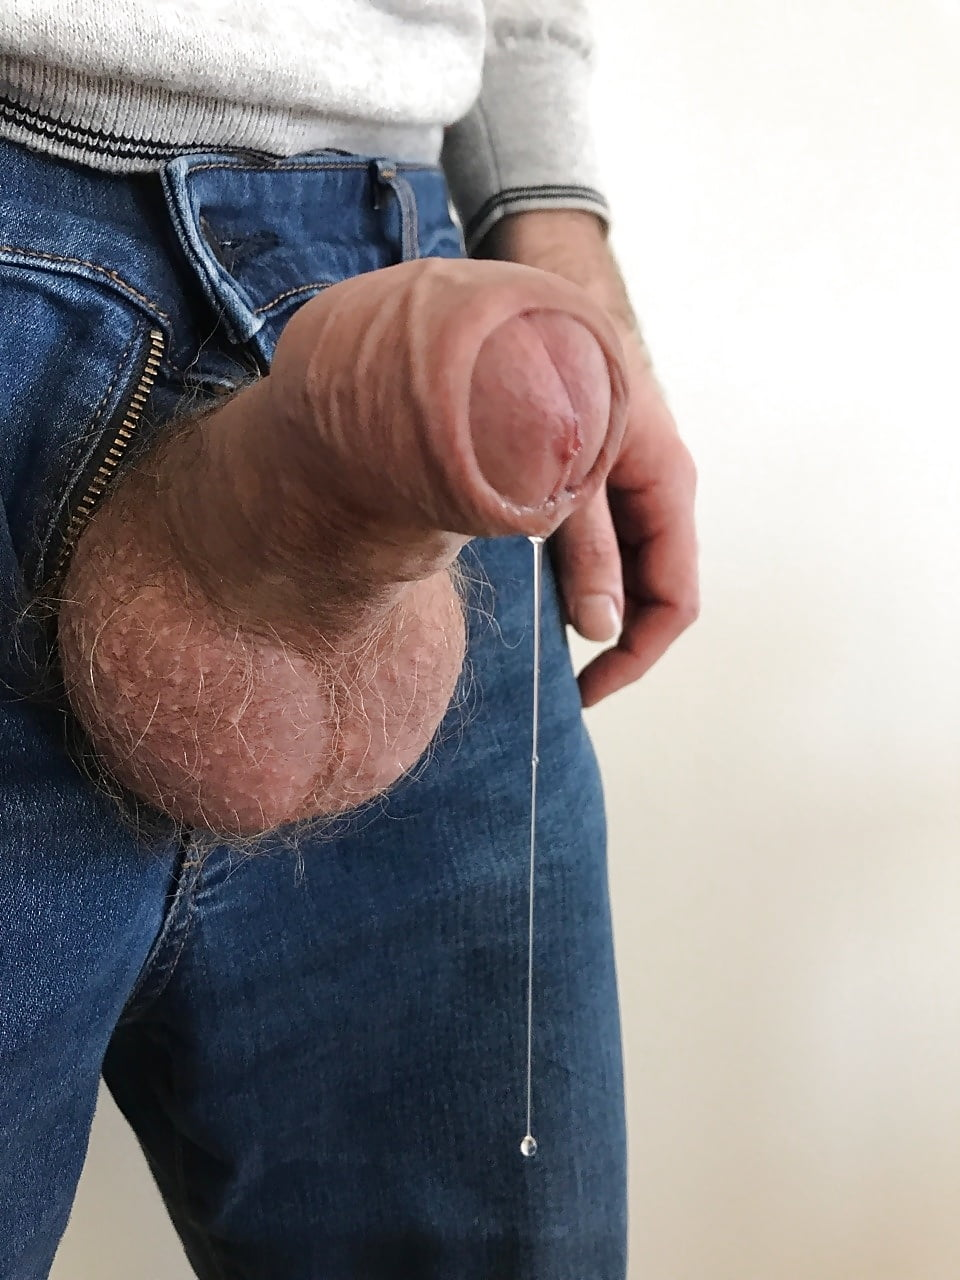 Penis out of zipper